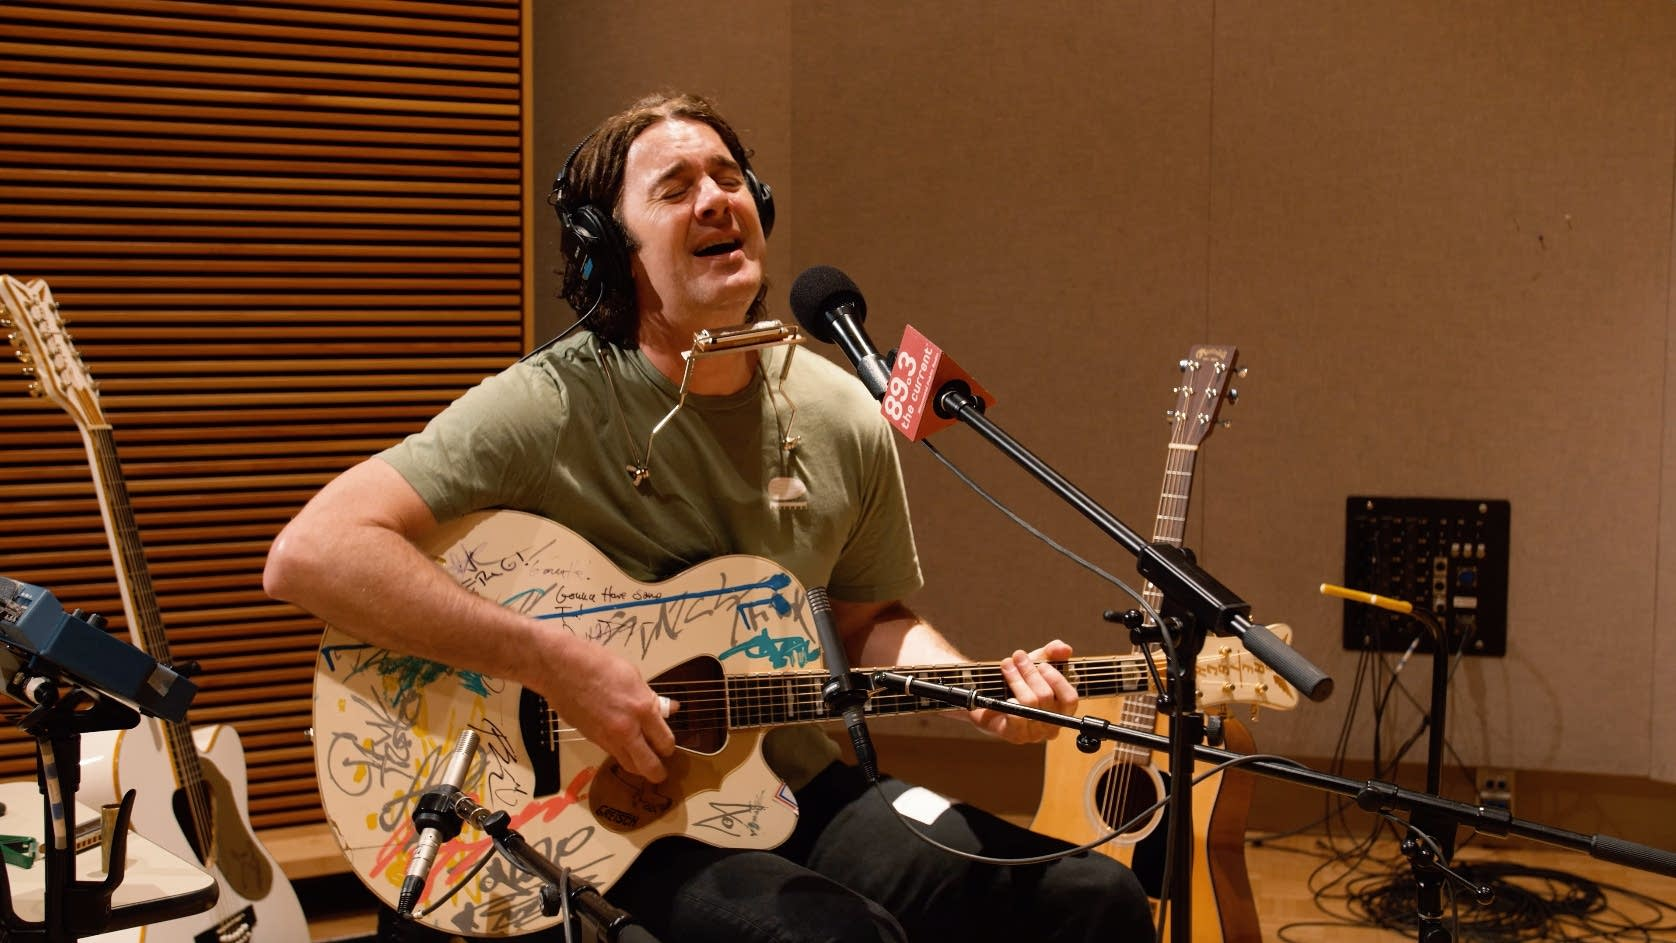 G Love plays his Gretsch Rancher Falcon acoustic guitar